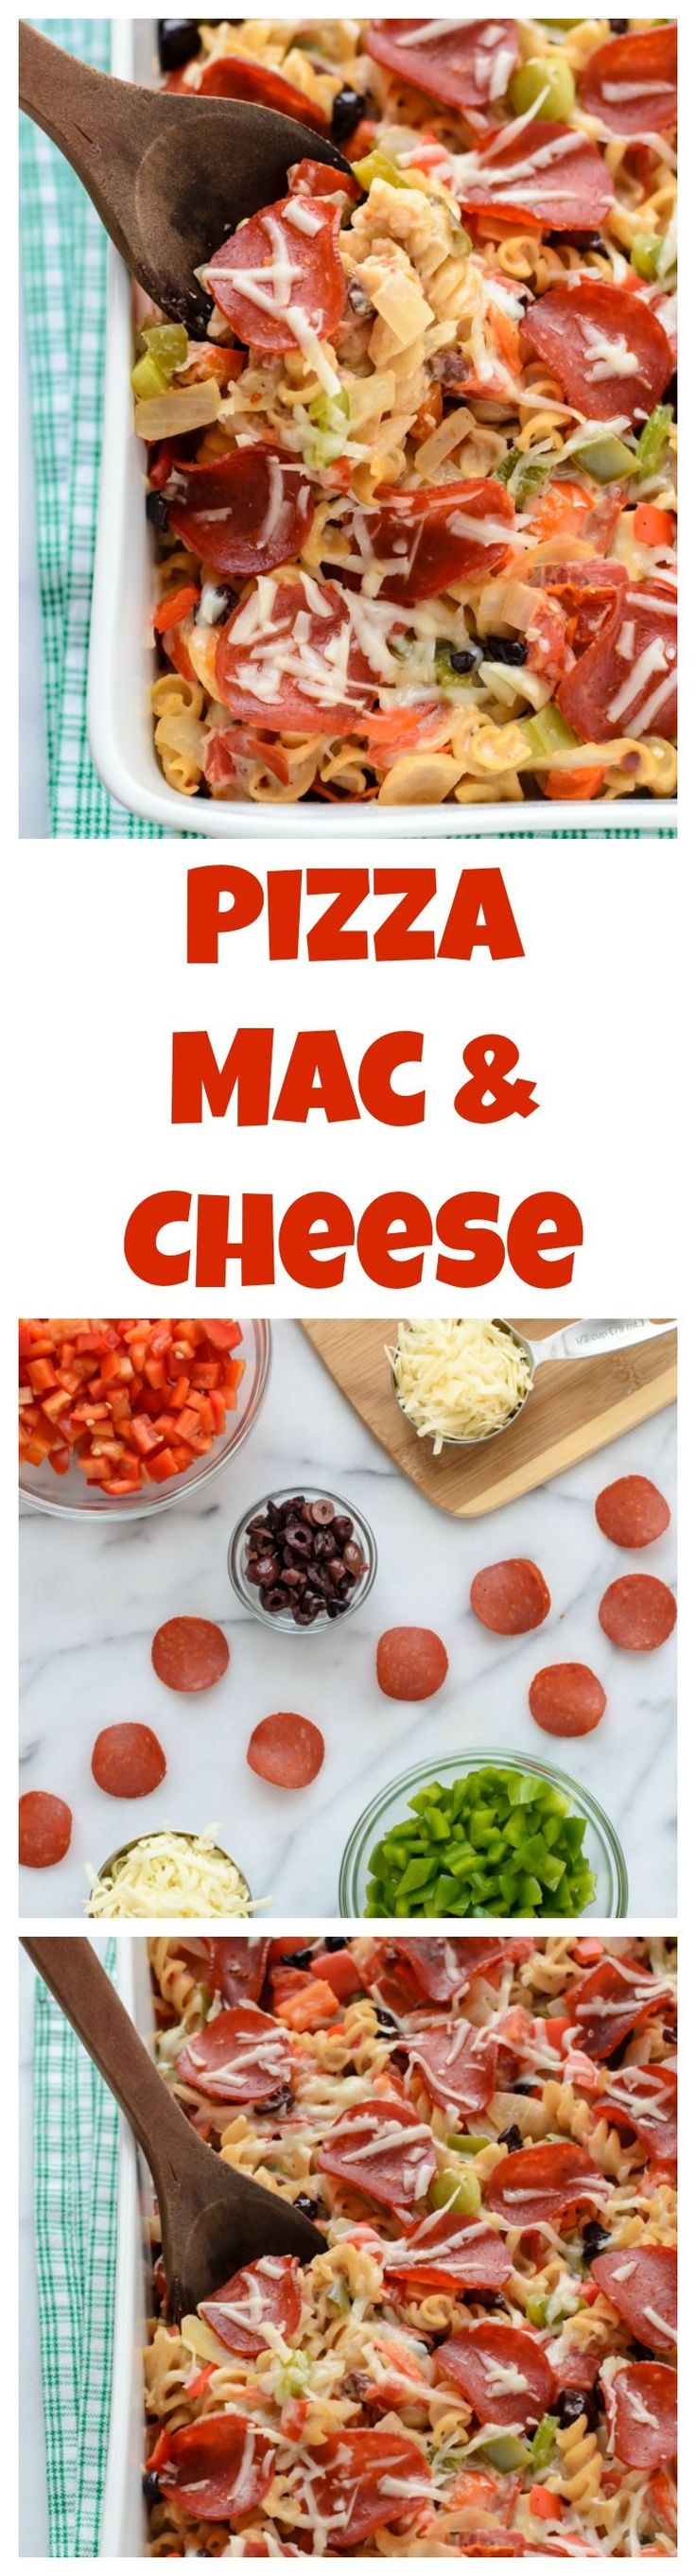 An instant family favorite: Lightened up Pizza Mac and Cheese. A healthier baked mac and cheese with turkey pepperoni, veggies, and any of your favorite pizza toppings.